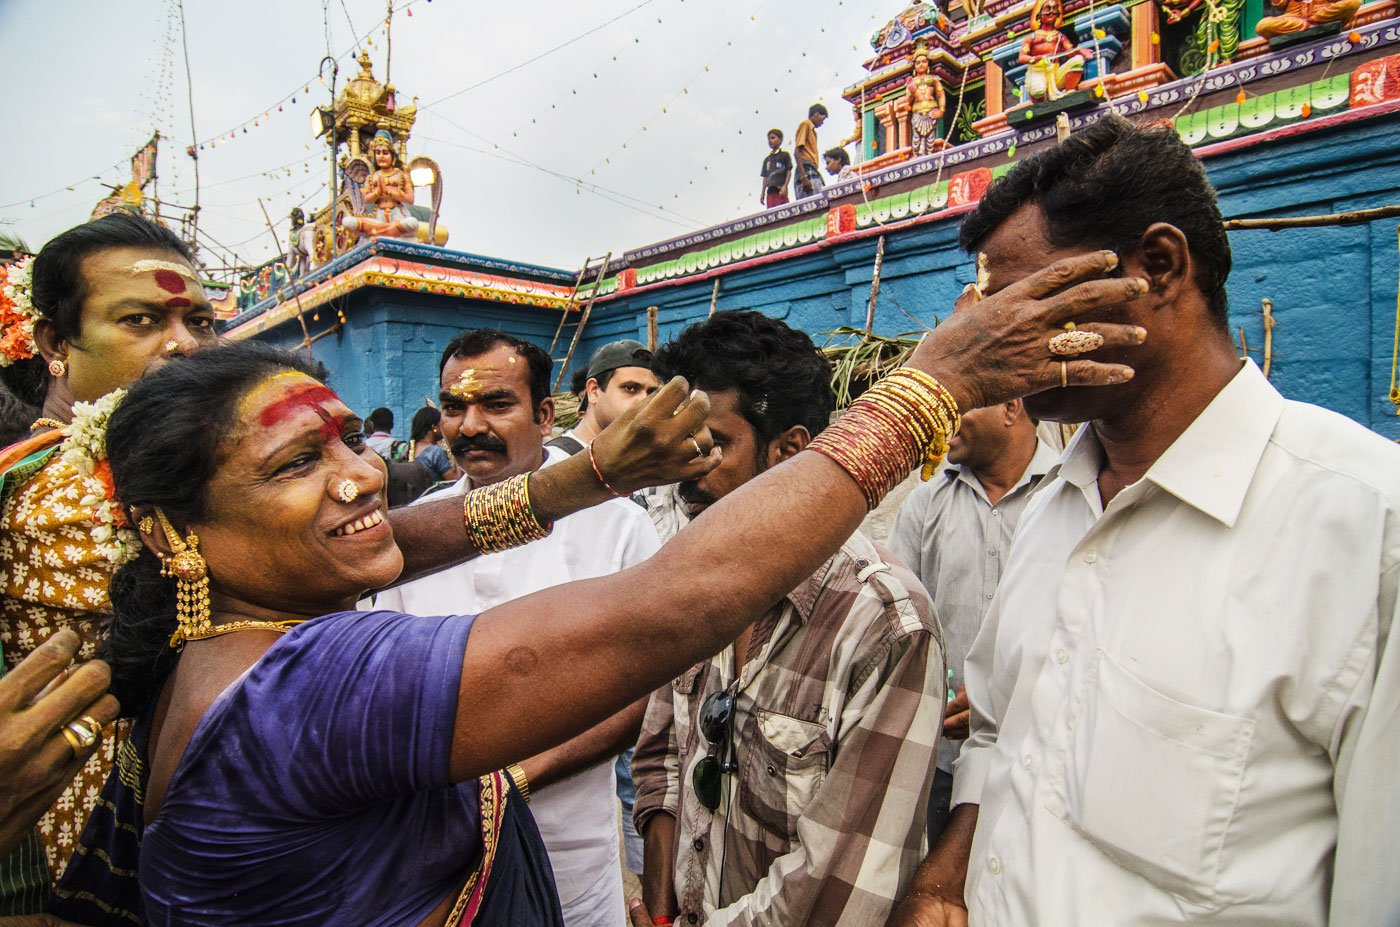 Despite the social ostracism that transgender women face, people also regard them as 'lucky'. They gather outside the Koothandavar temple to receive blessings from aravanis.